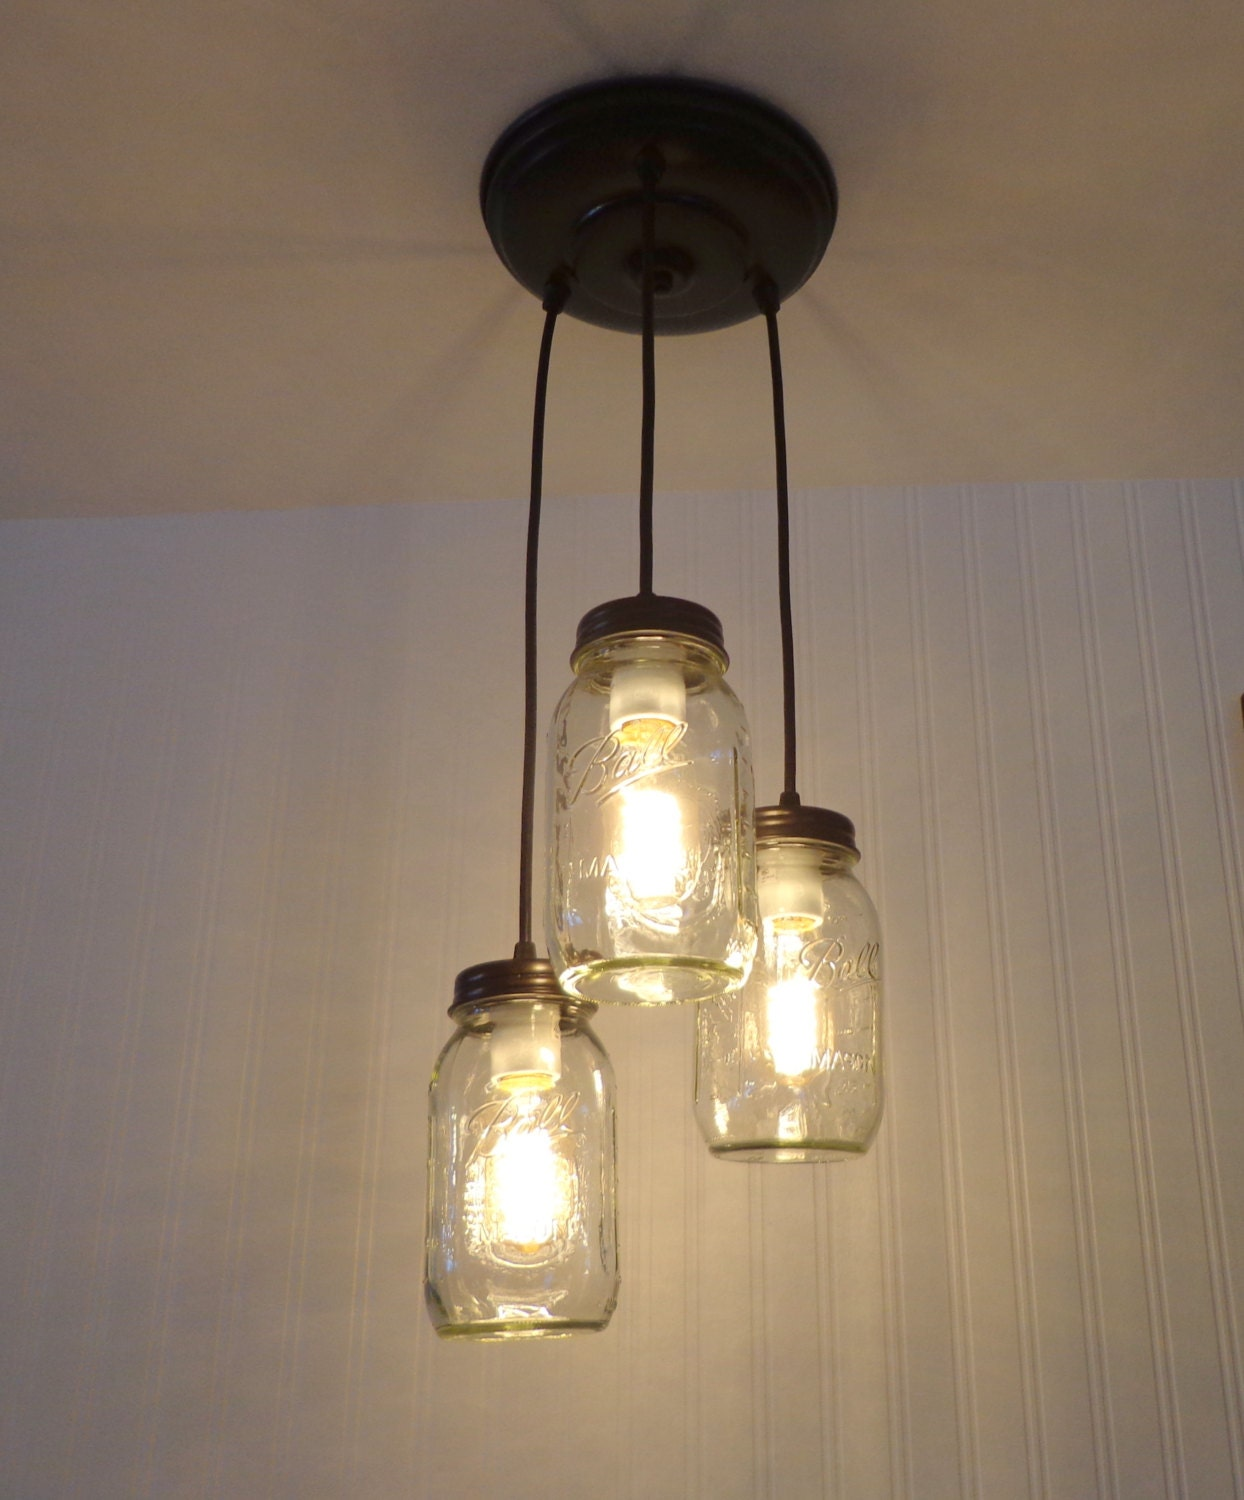 Mason jar chandelier light trio new quarts - Light fixtures chandeliers ...